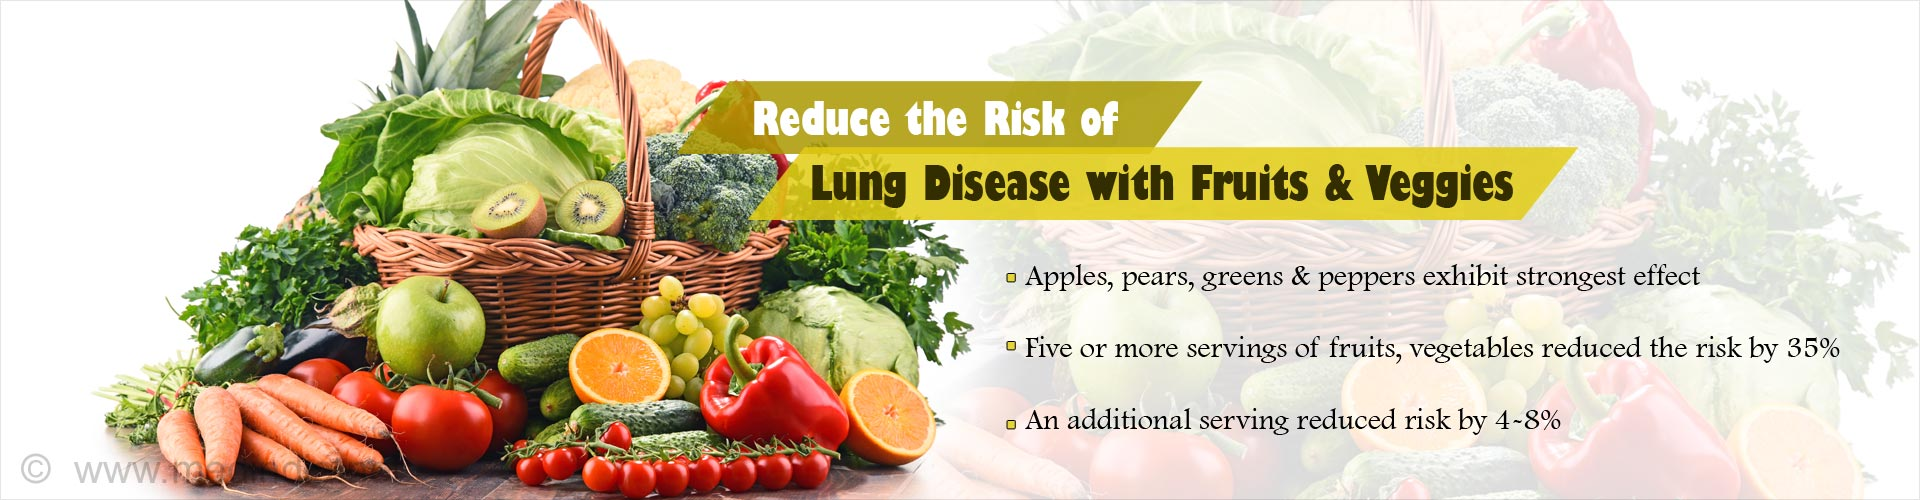 Eating 5 or More Serving Of Fruits & Vegetables Reduces Risk of Lung Disease